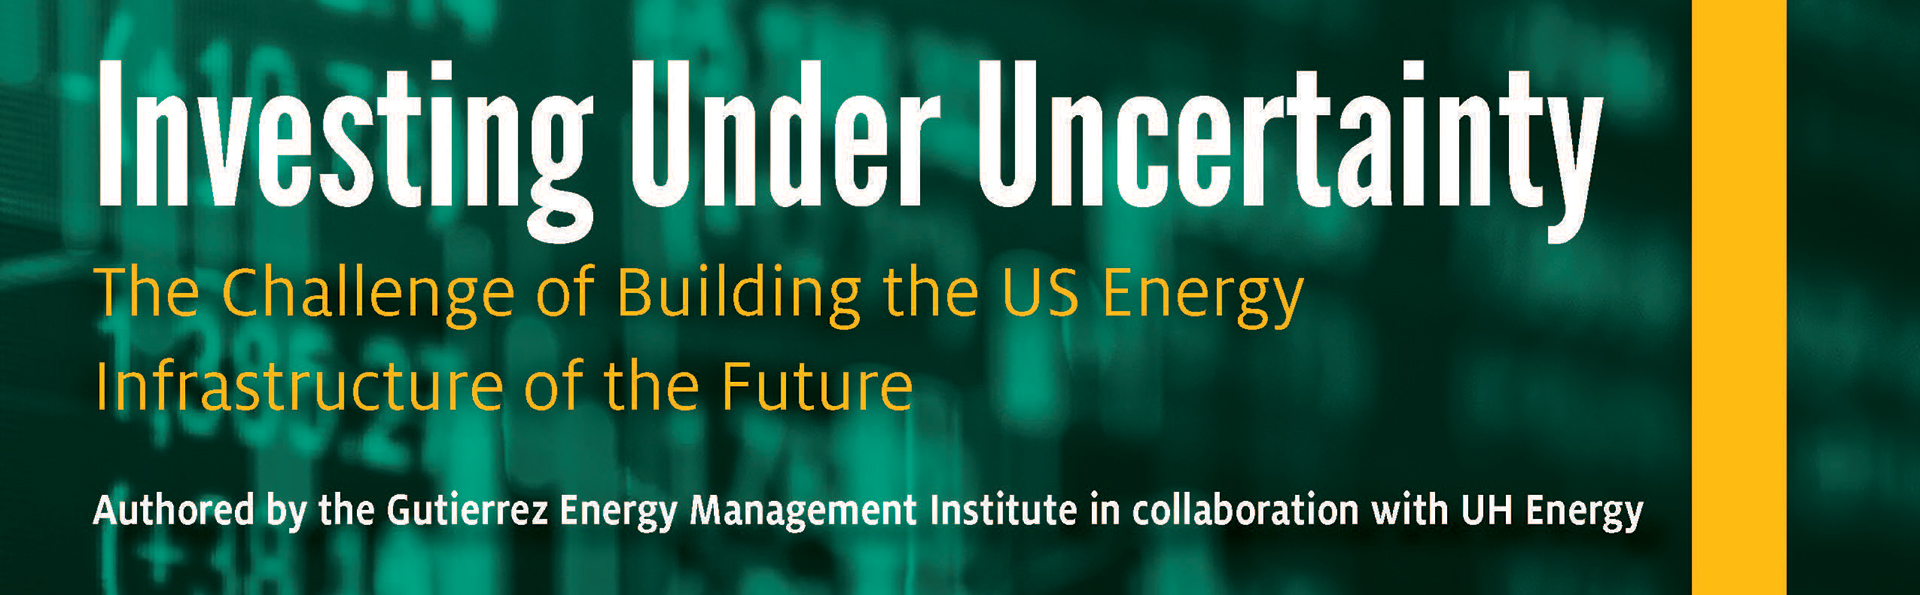 Investing Under Uncertainty: The Challenge of Building the US Energy Infrastructure of the Future